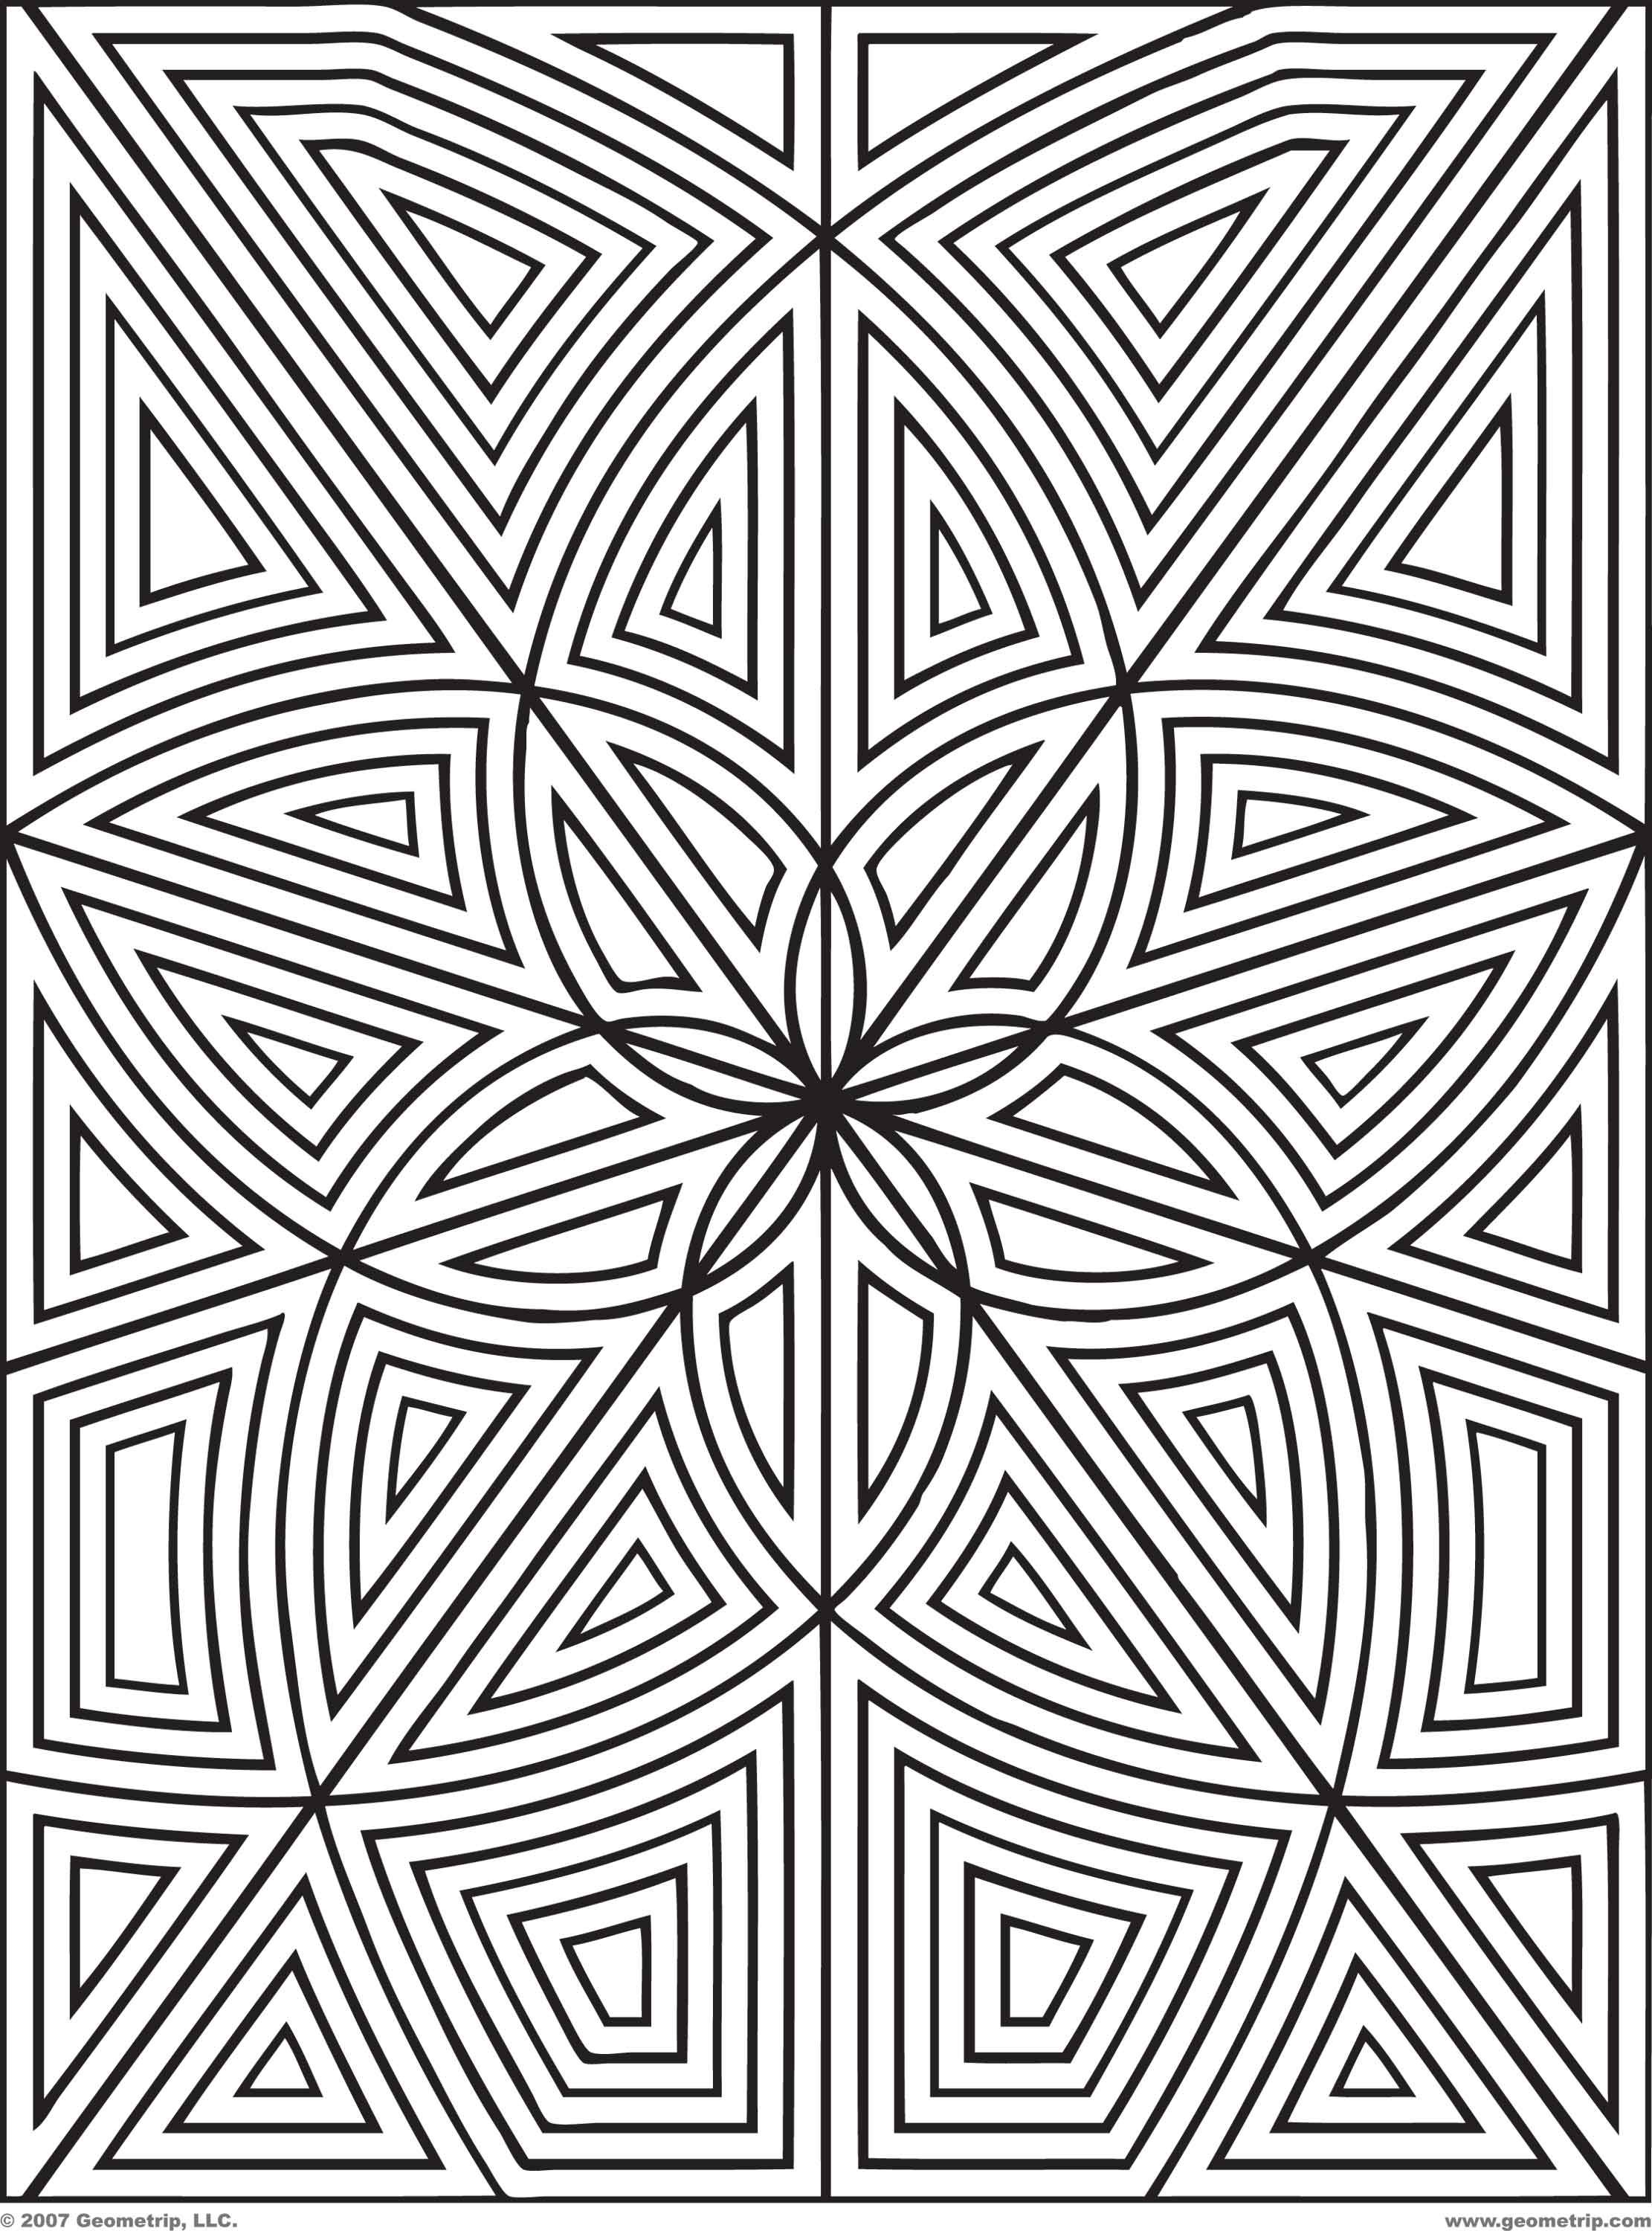 Designs To Print And Color  Geometripcom  Free Geometric Coloring